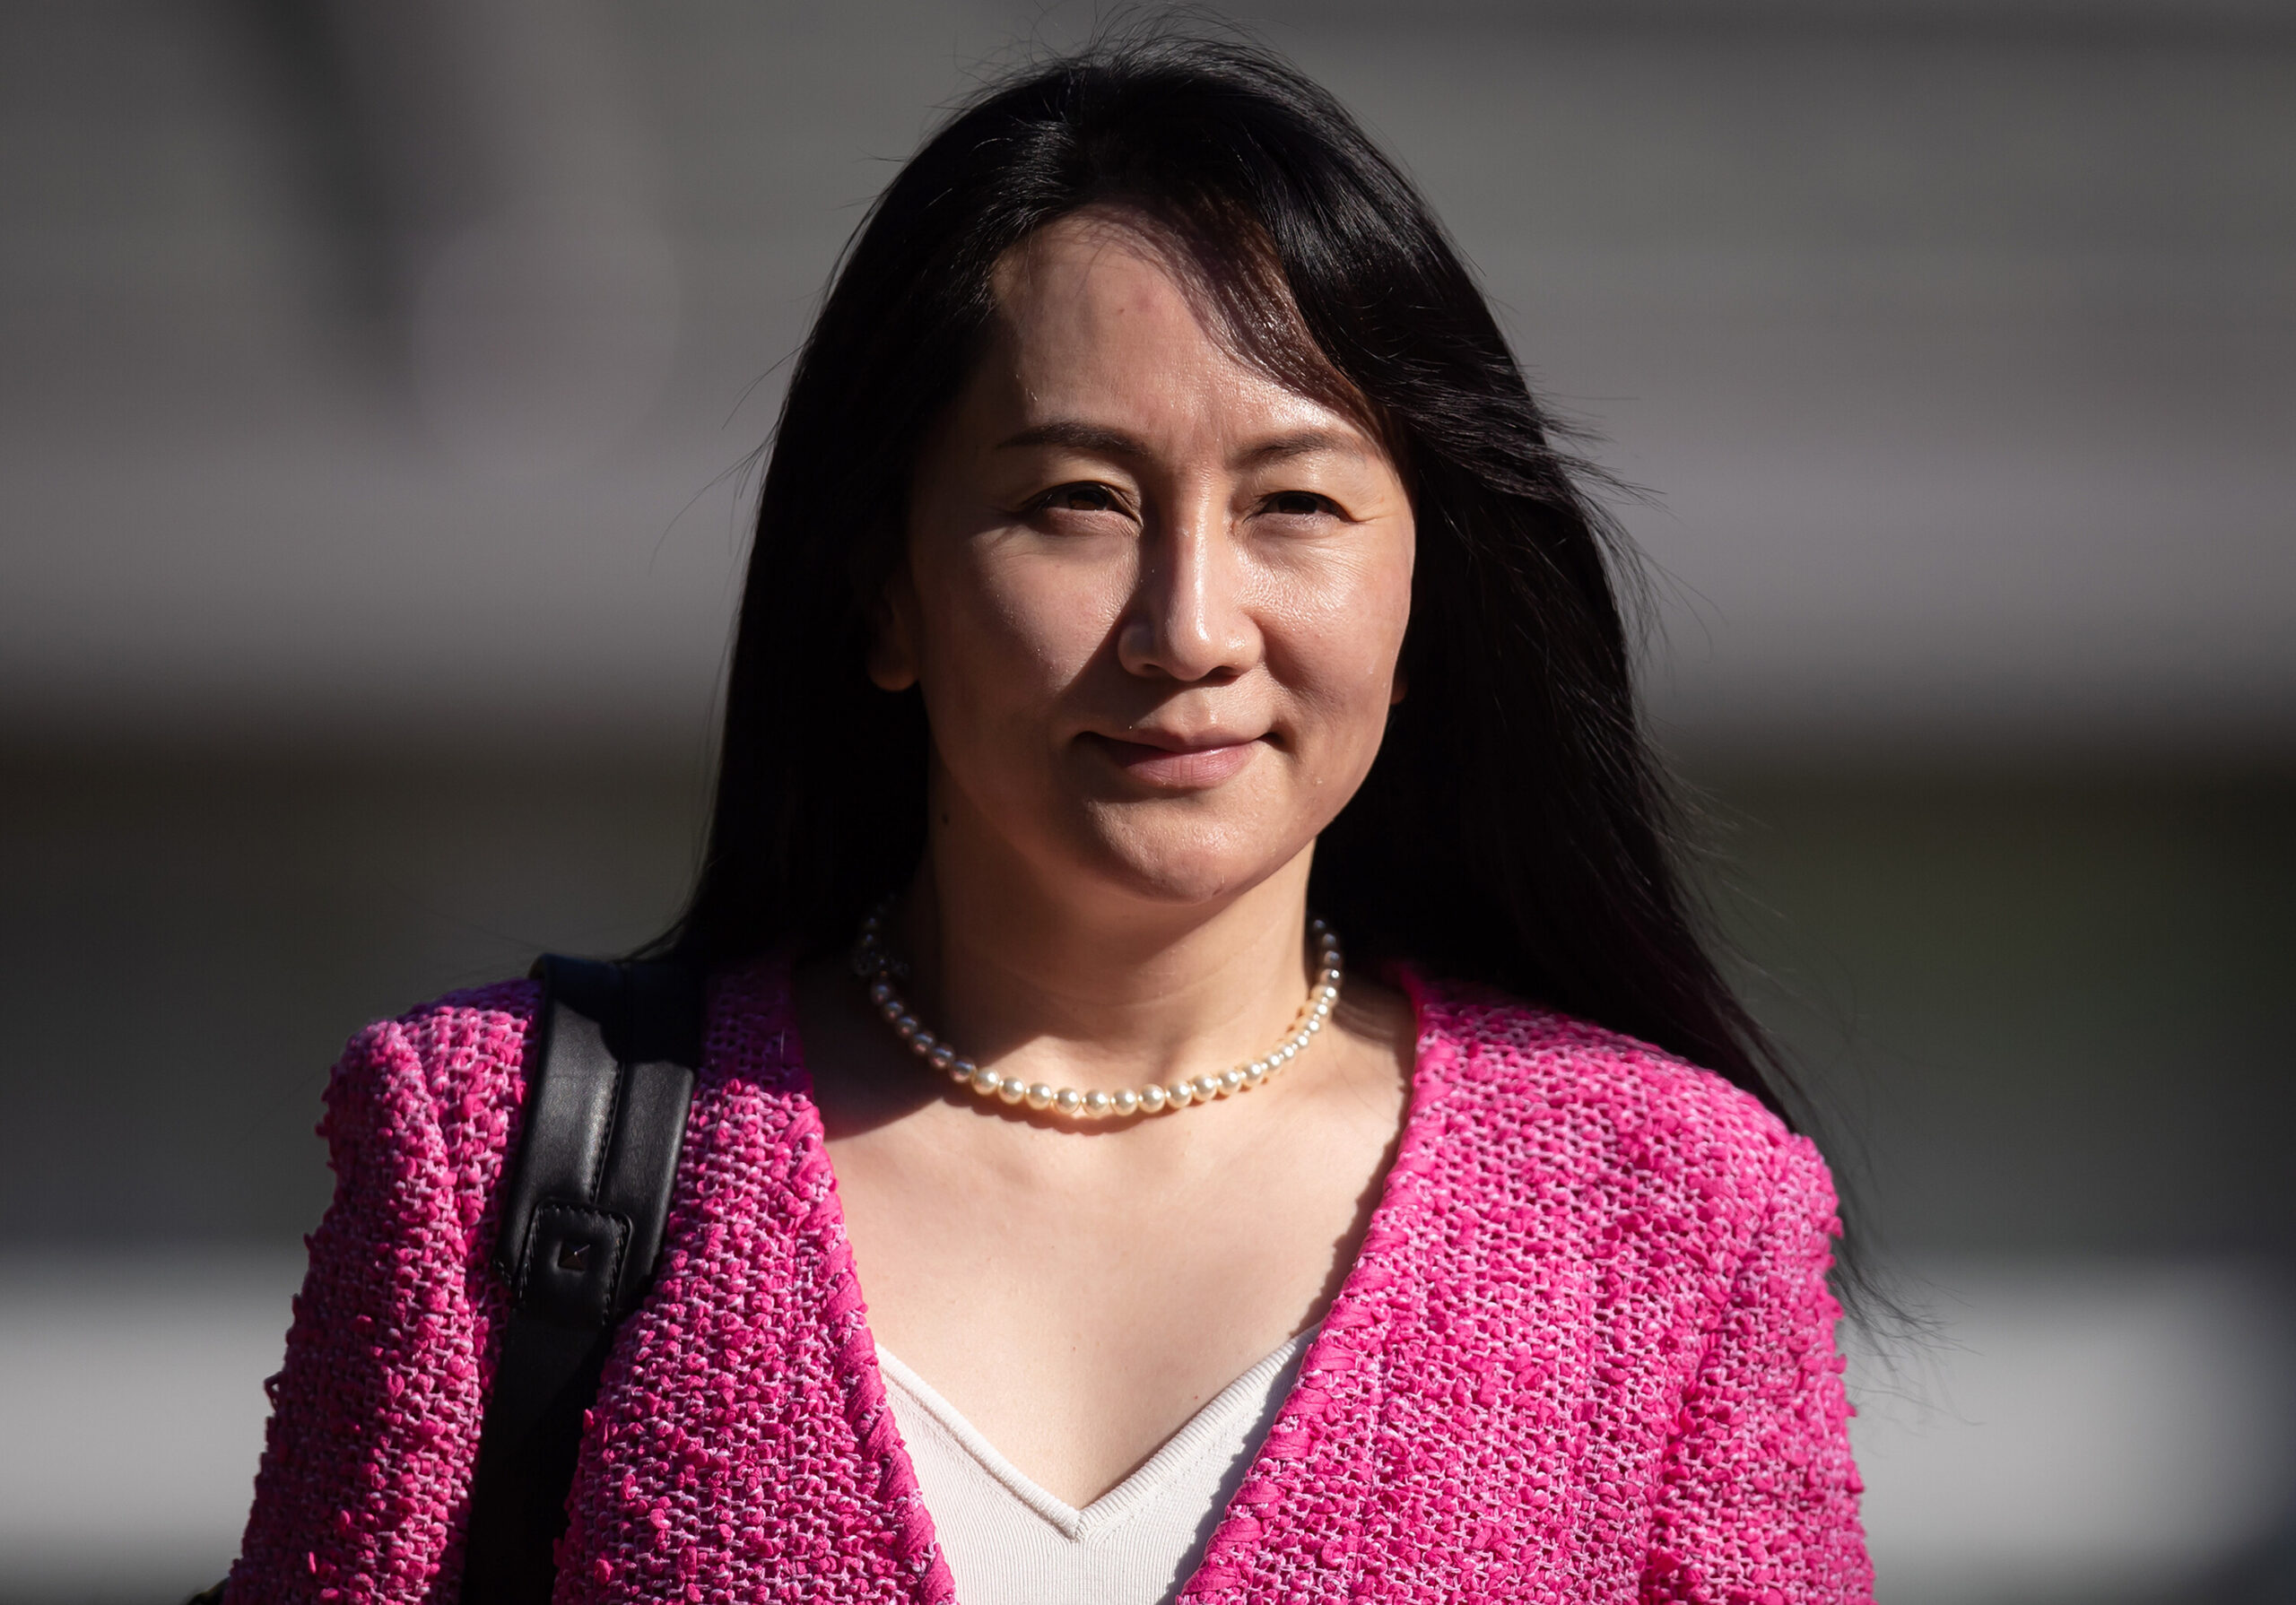 <i>Darryl Dyck/Bloomberg/Getty Images</i><br/>Huawei CFO Meng Wanzhou is expected to appear in a Brooklyn court Friday to plead guilty to US charges.